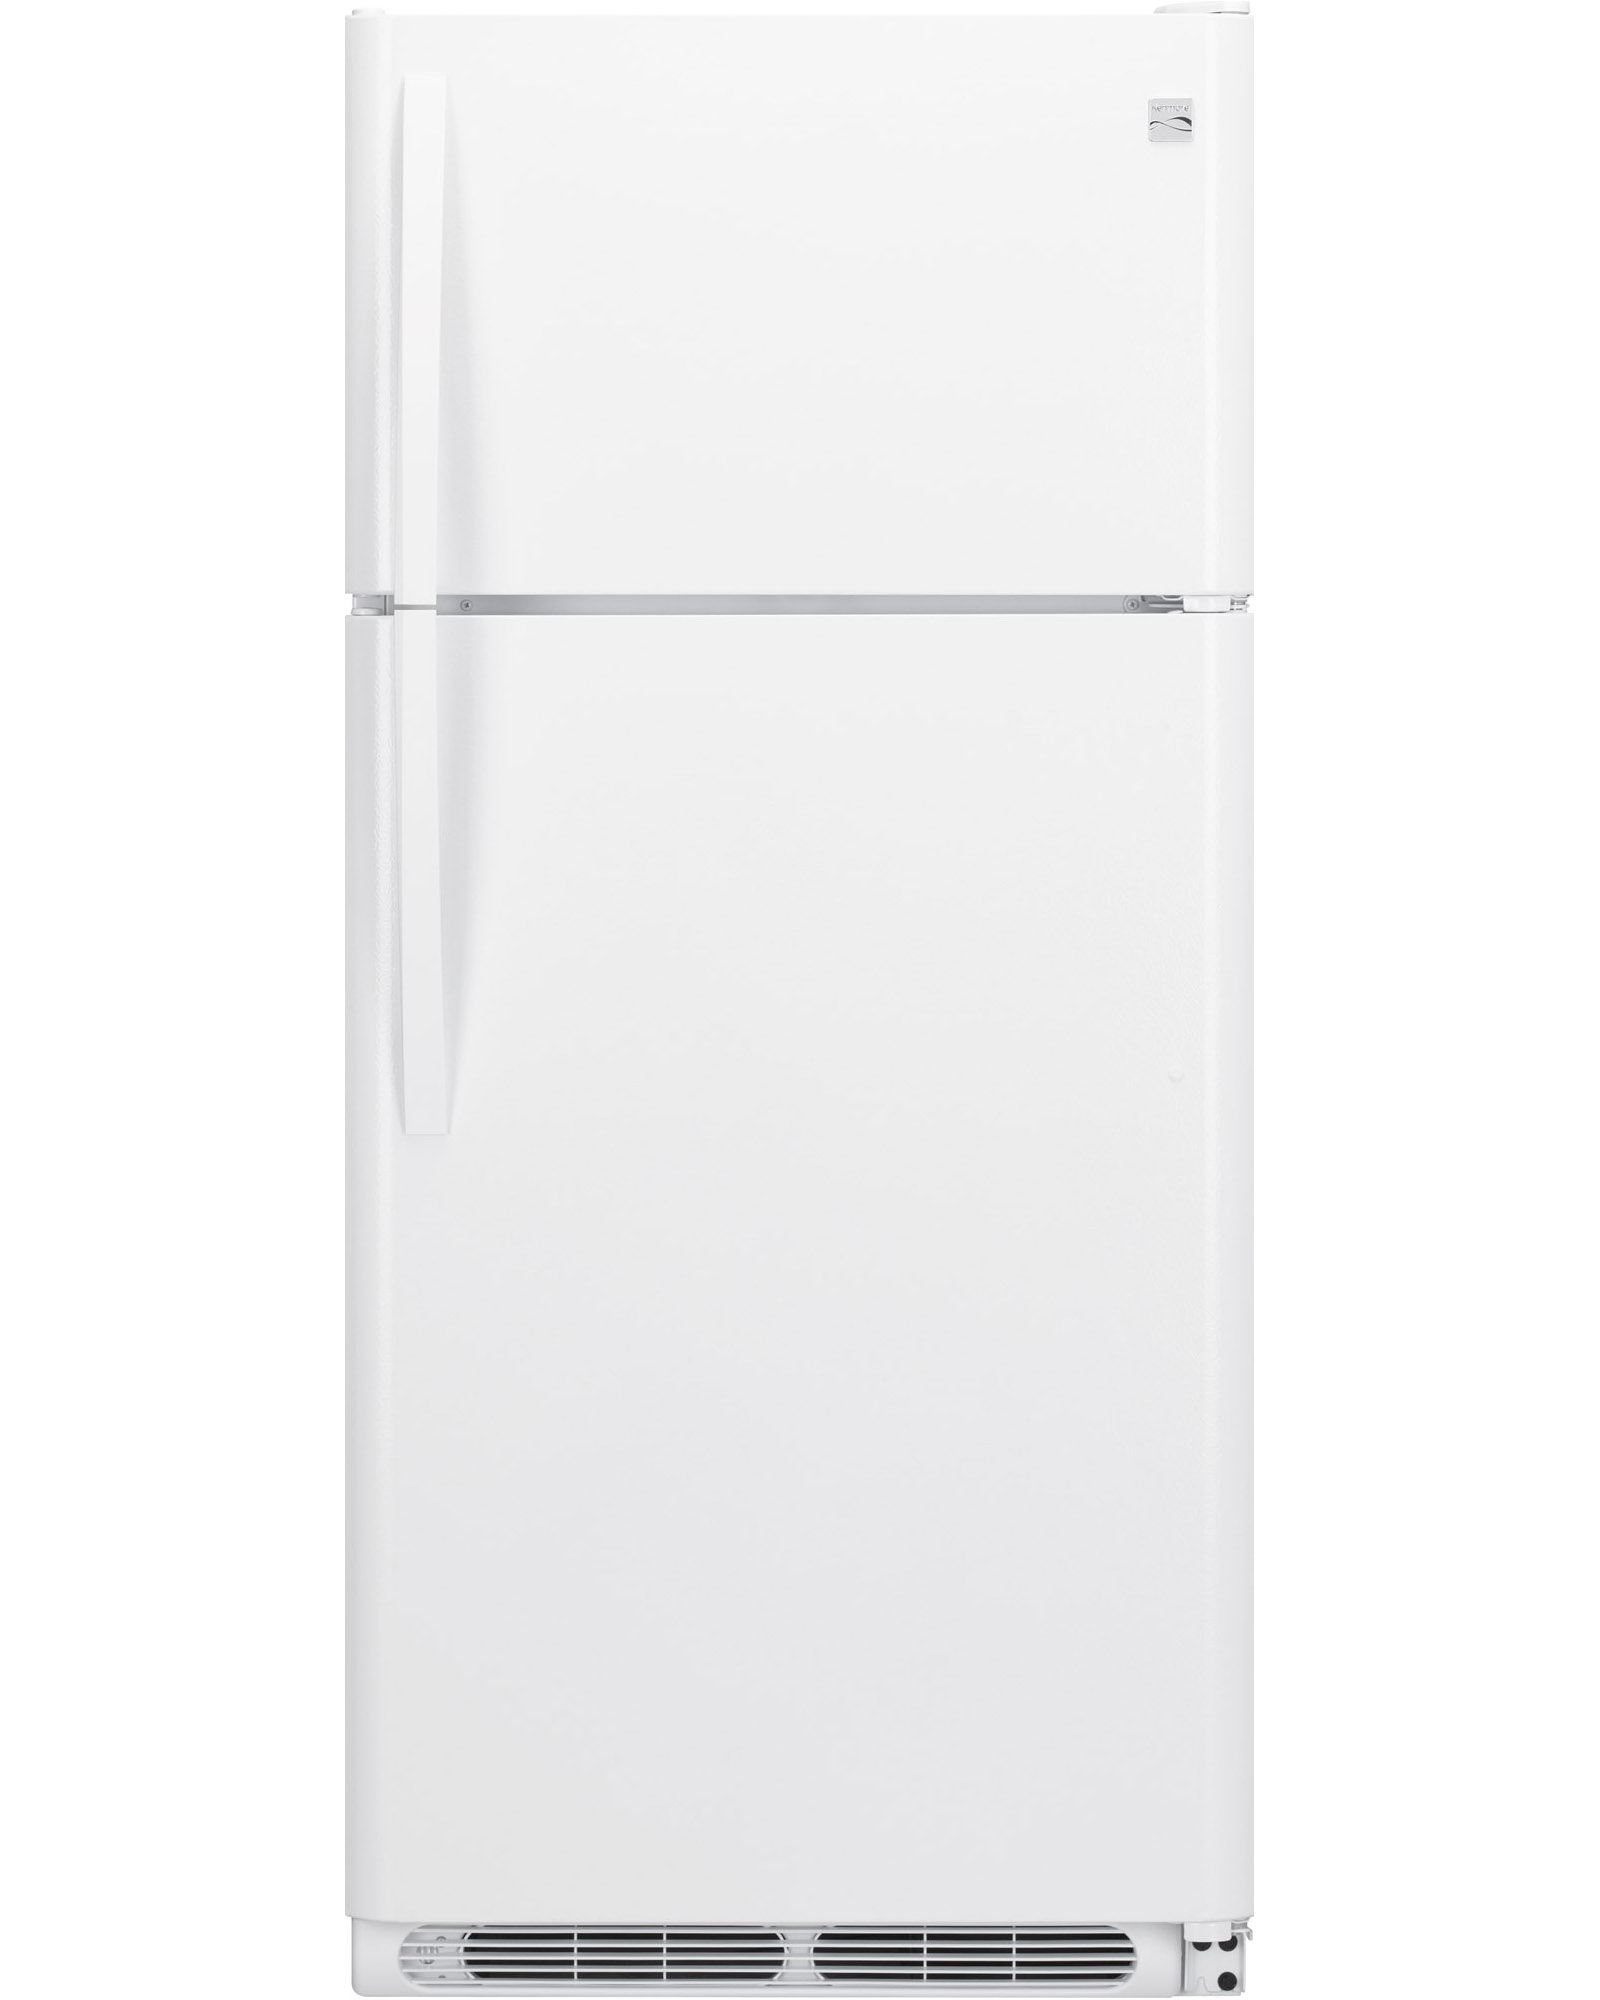 Kenmore 60412 18 cu. ft. Top Freezer Refrigerator w/ Wire Shelves - White